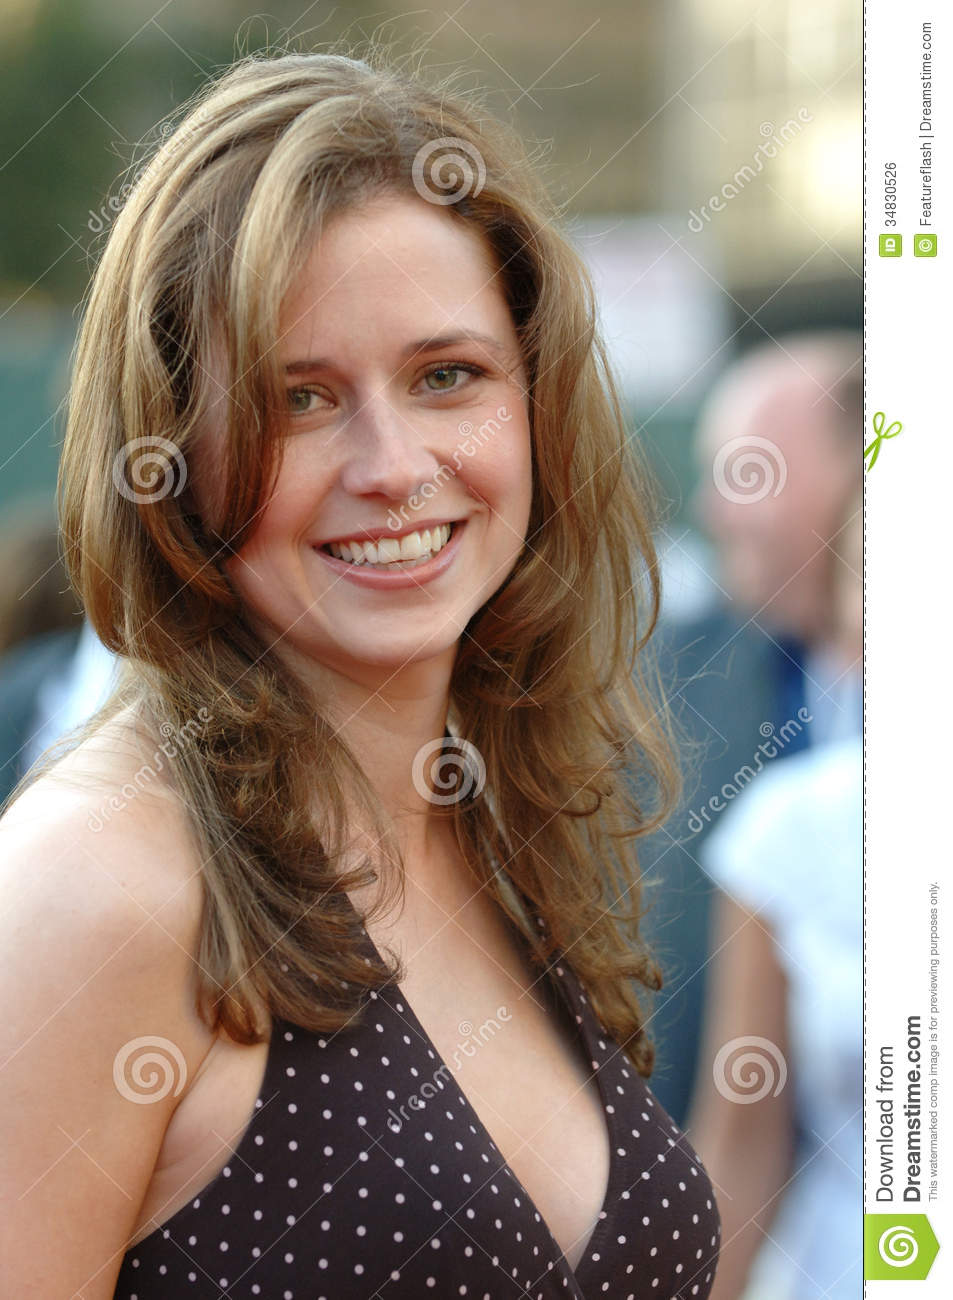 jenna fischer pregnant while on the officejenna fischer 2016, jenna fischer man with a plan, jenna fischer wallpaper, jenna fischer the office, jenna fischer director, jenna fischer 2014, jenna fischer angela kinsey, jenna fischer 2012, jenna fischer reddit, jenna fischer and emily blunt, jenna fischer and carrie fisher, jenna fischer instagram, jenna fischer husband, jenna fischer and john krasinski, jenna fischer insta, jenna fischer ice cream, jenna fischer pregnant while on the office, jenna fischer twitter, jenna fischer photography, jenna fischer daughter